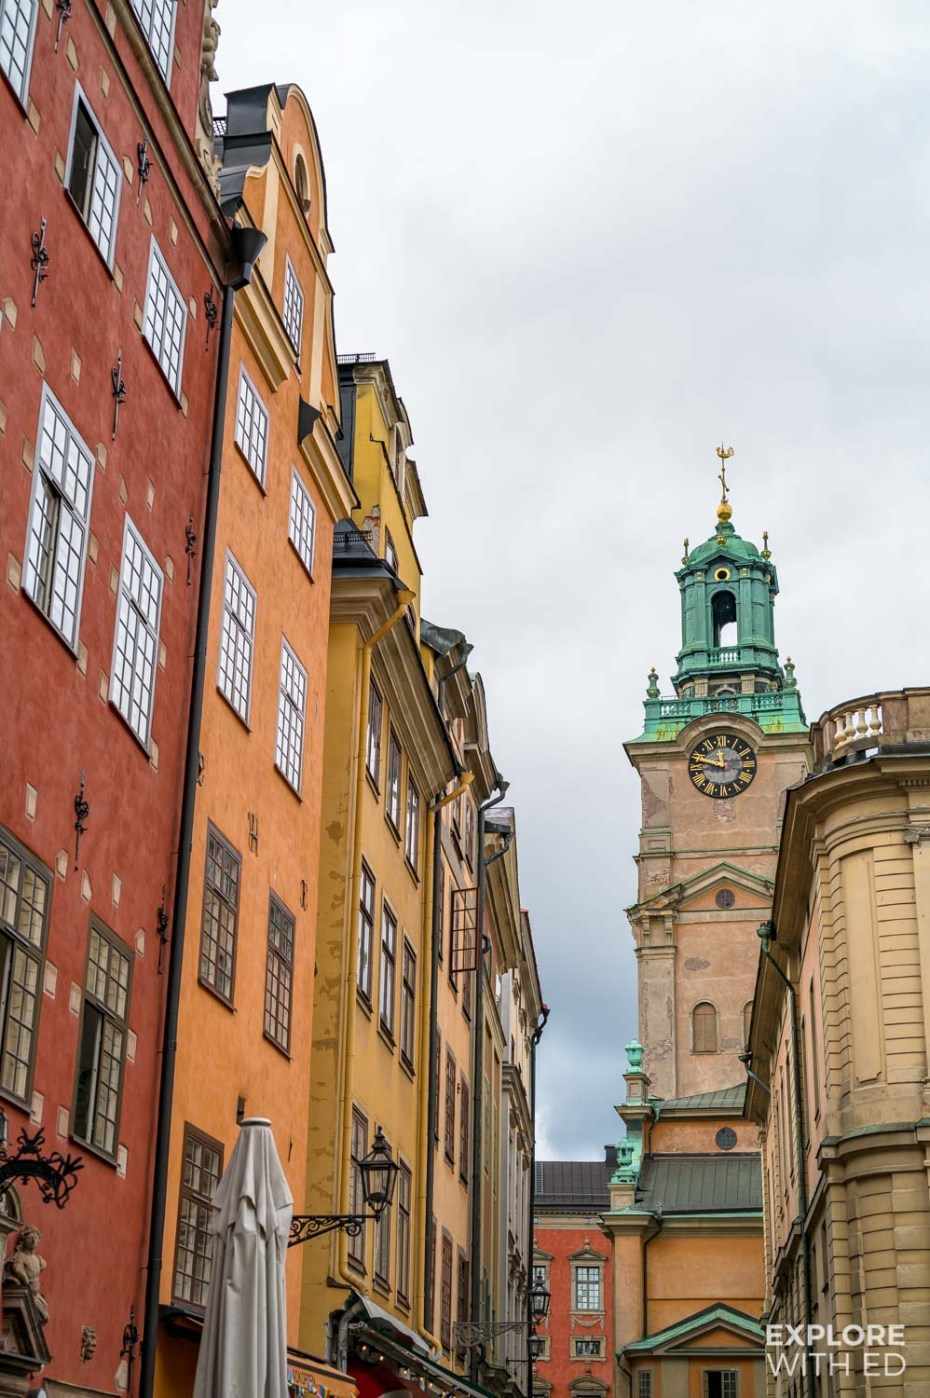 The old town of Stockholm with colourful townhouses